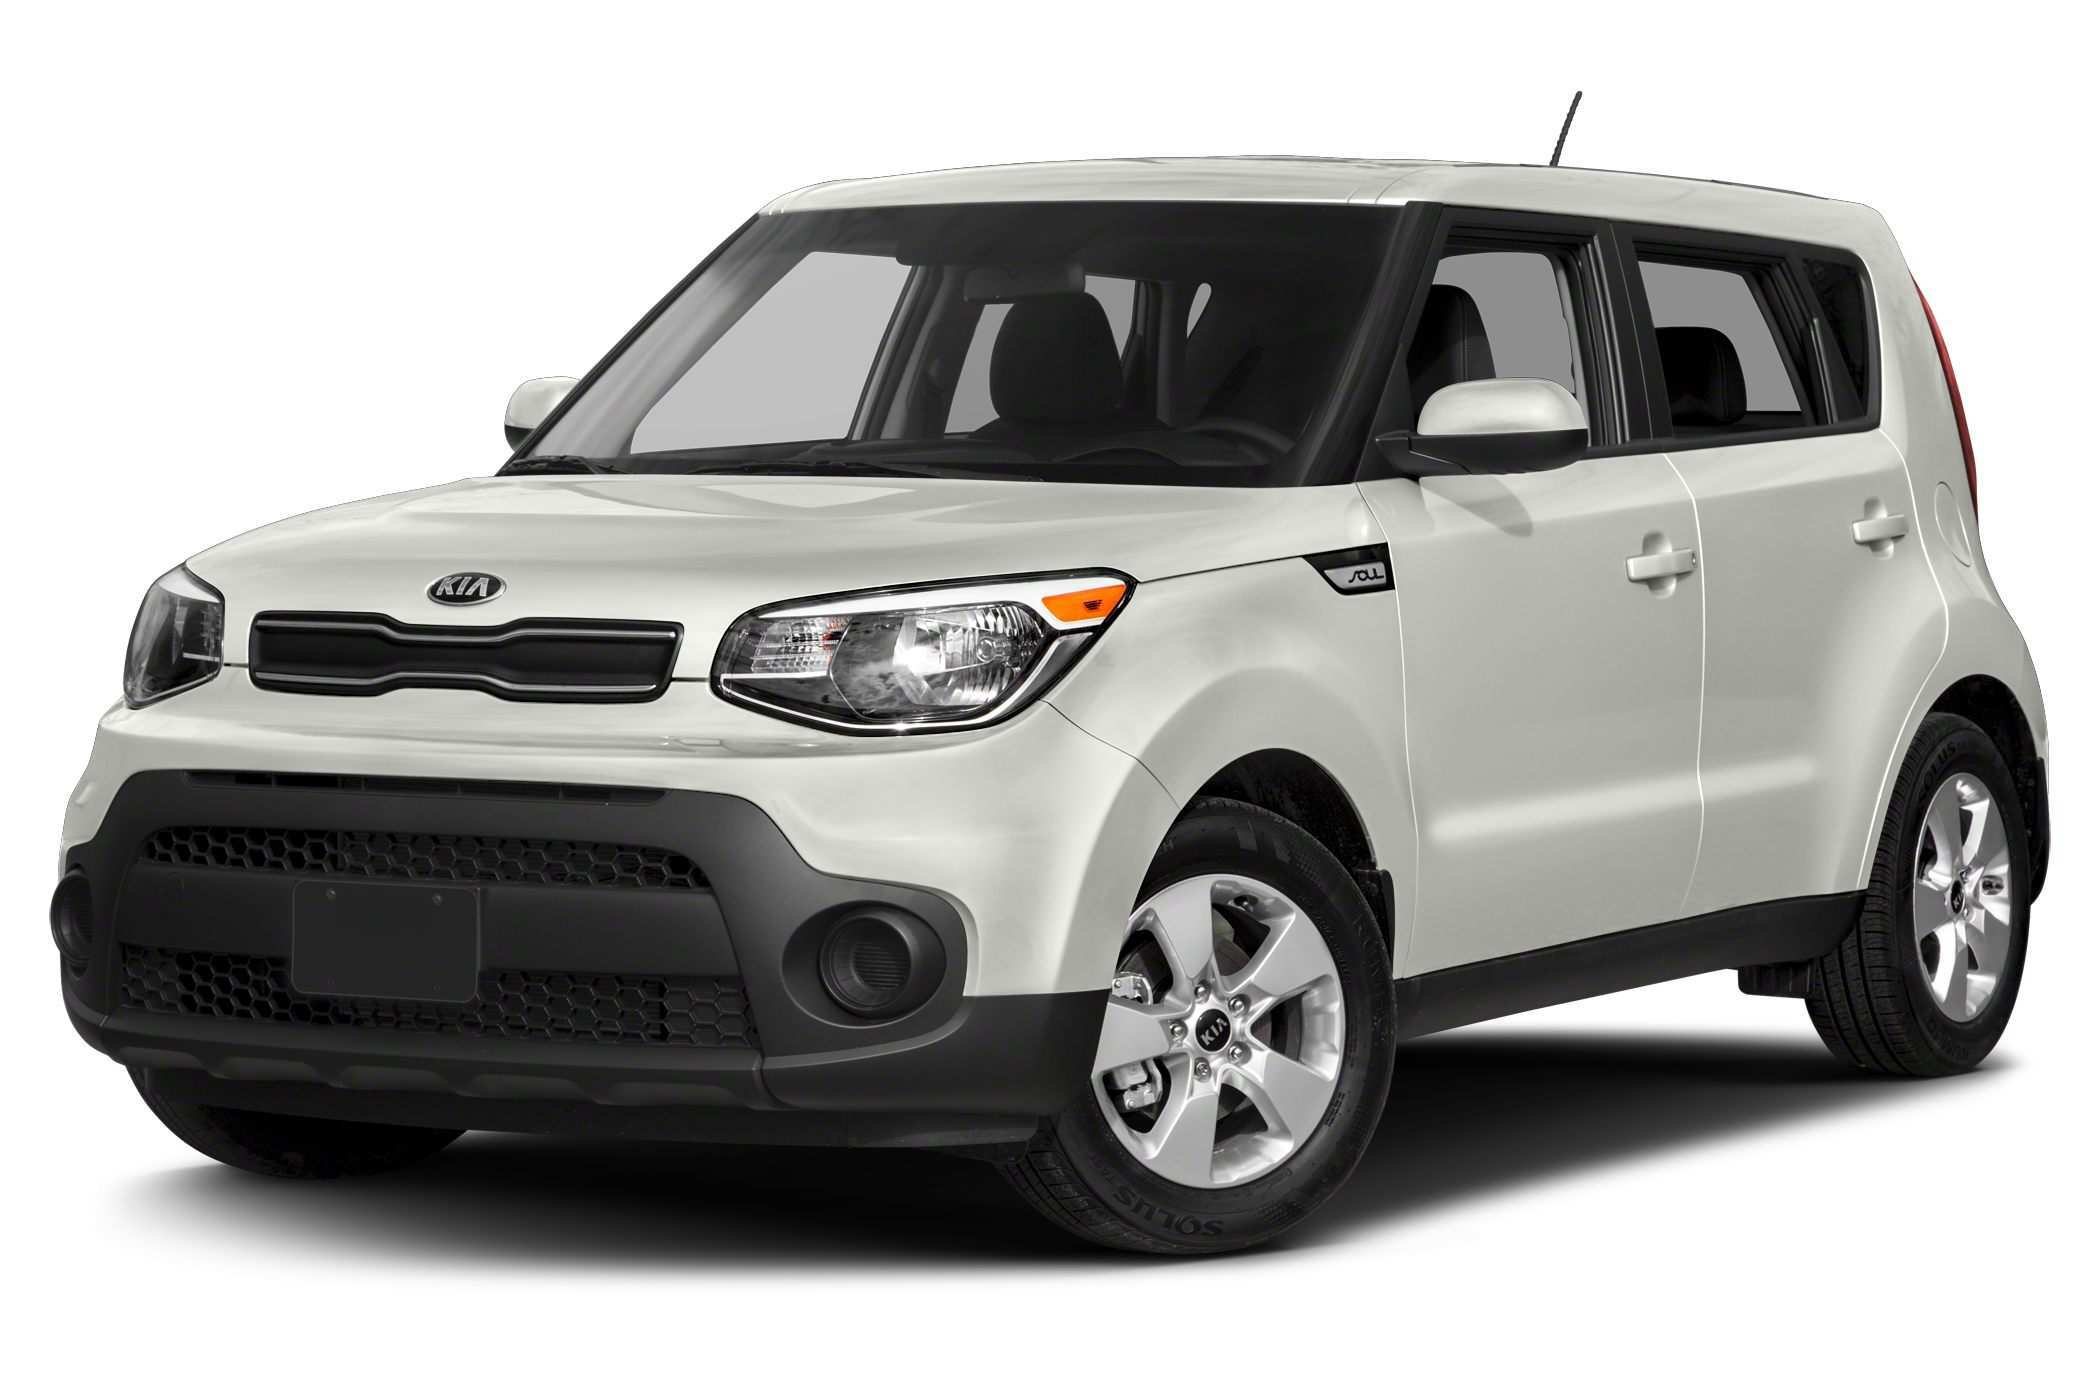 43 All New 2019 Kia Soul Configurations